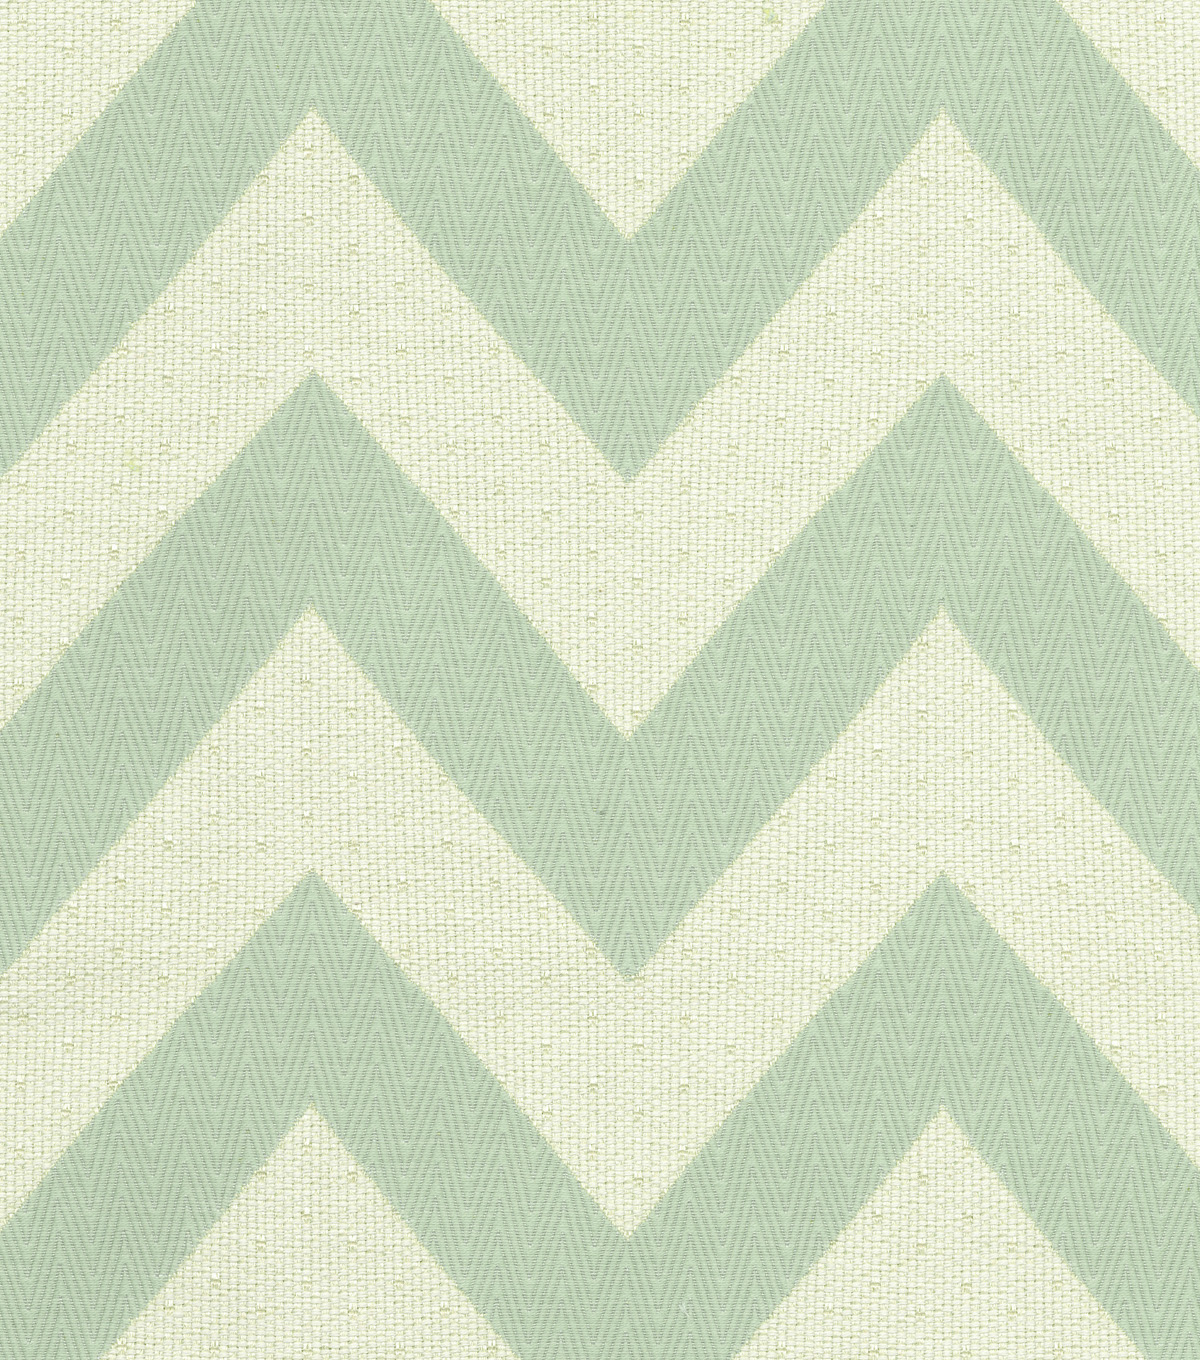 HGTV Home Upholstery Fabric-Chevron Chic Glacier